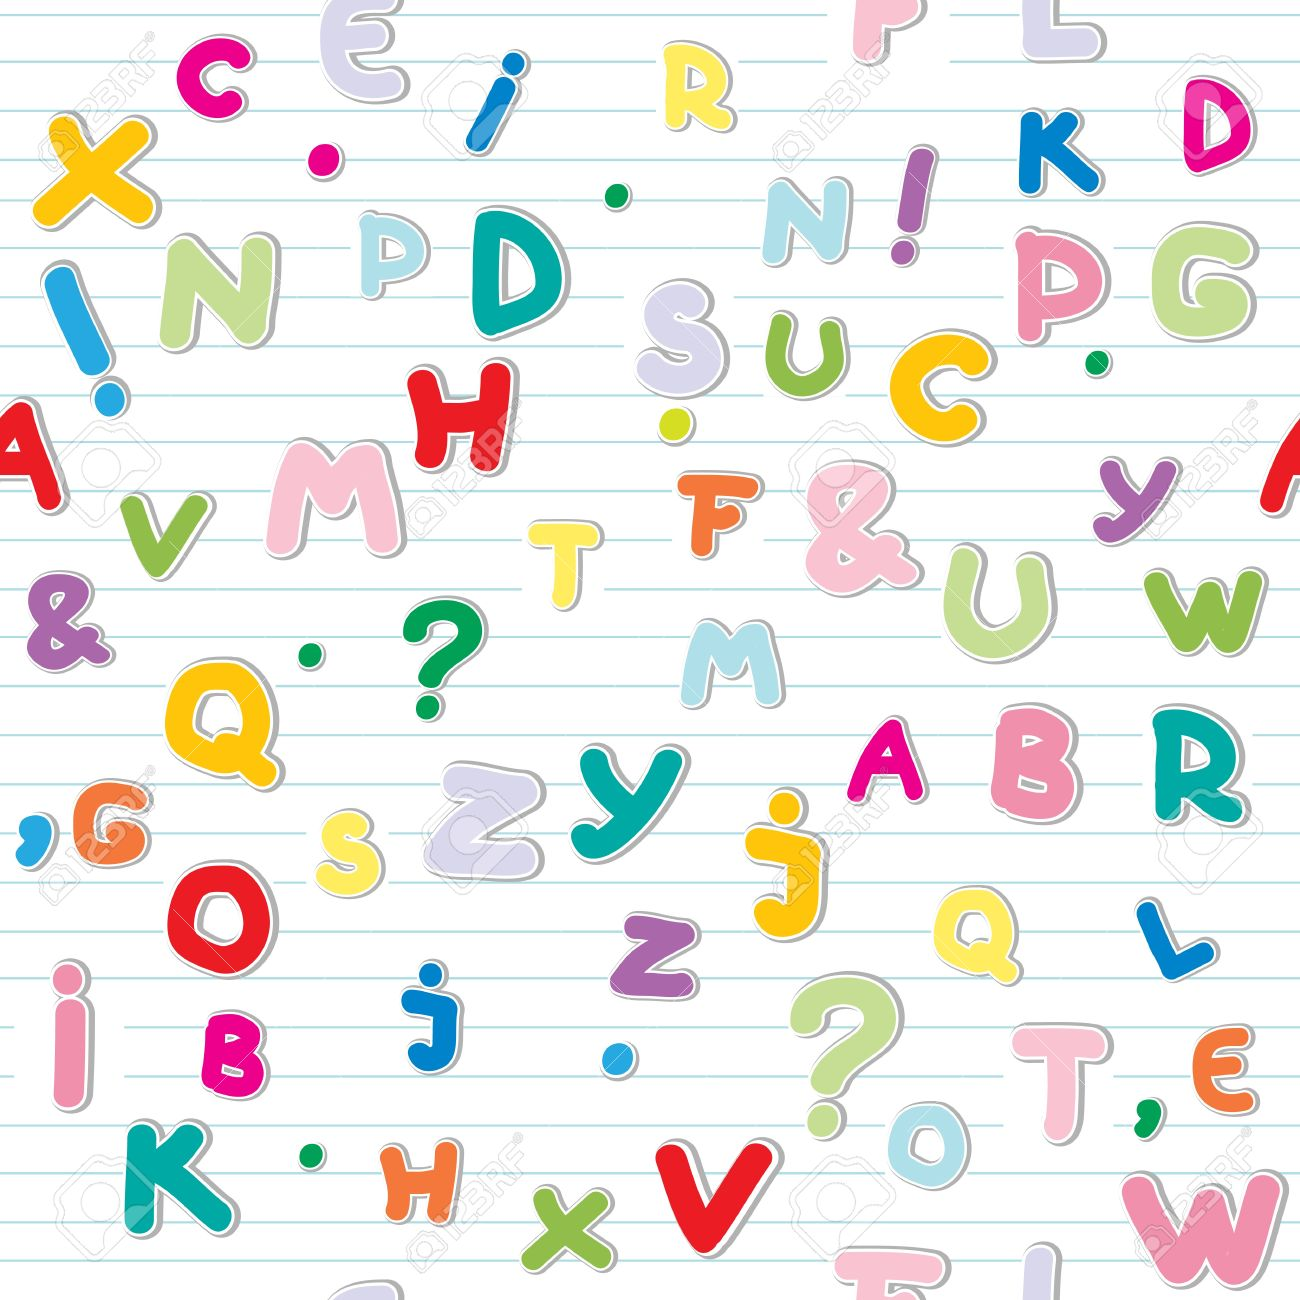 funny letters stickers pattern over a lined paper Stock Vector - 13624060